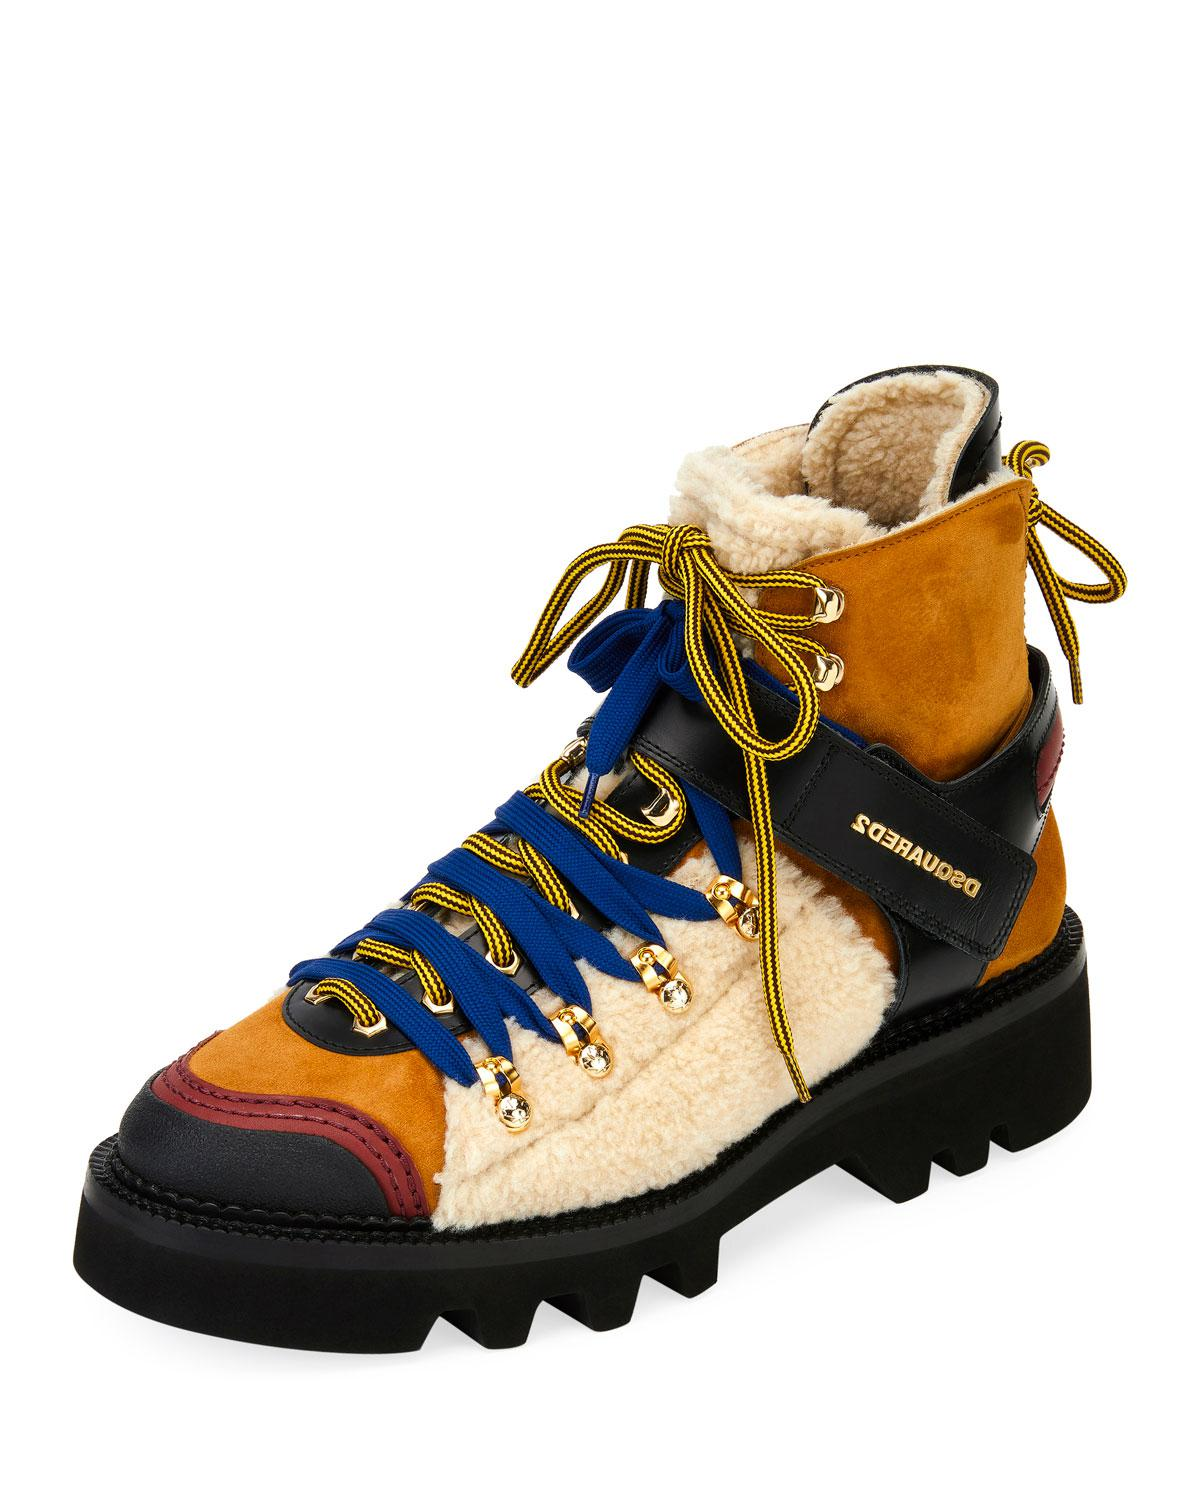 dsquared2 hiking boots